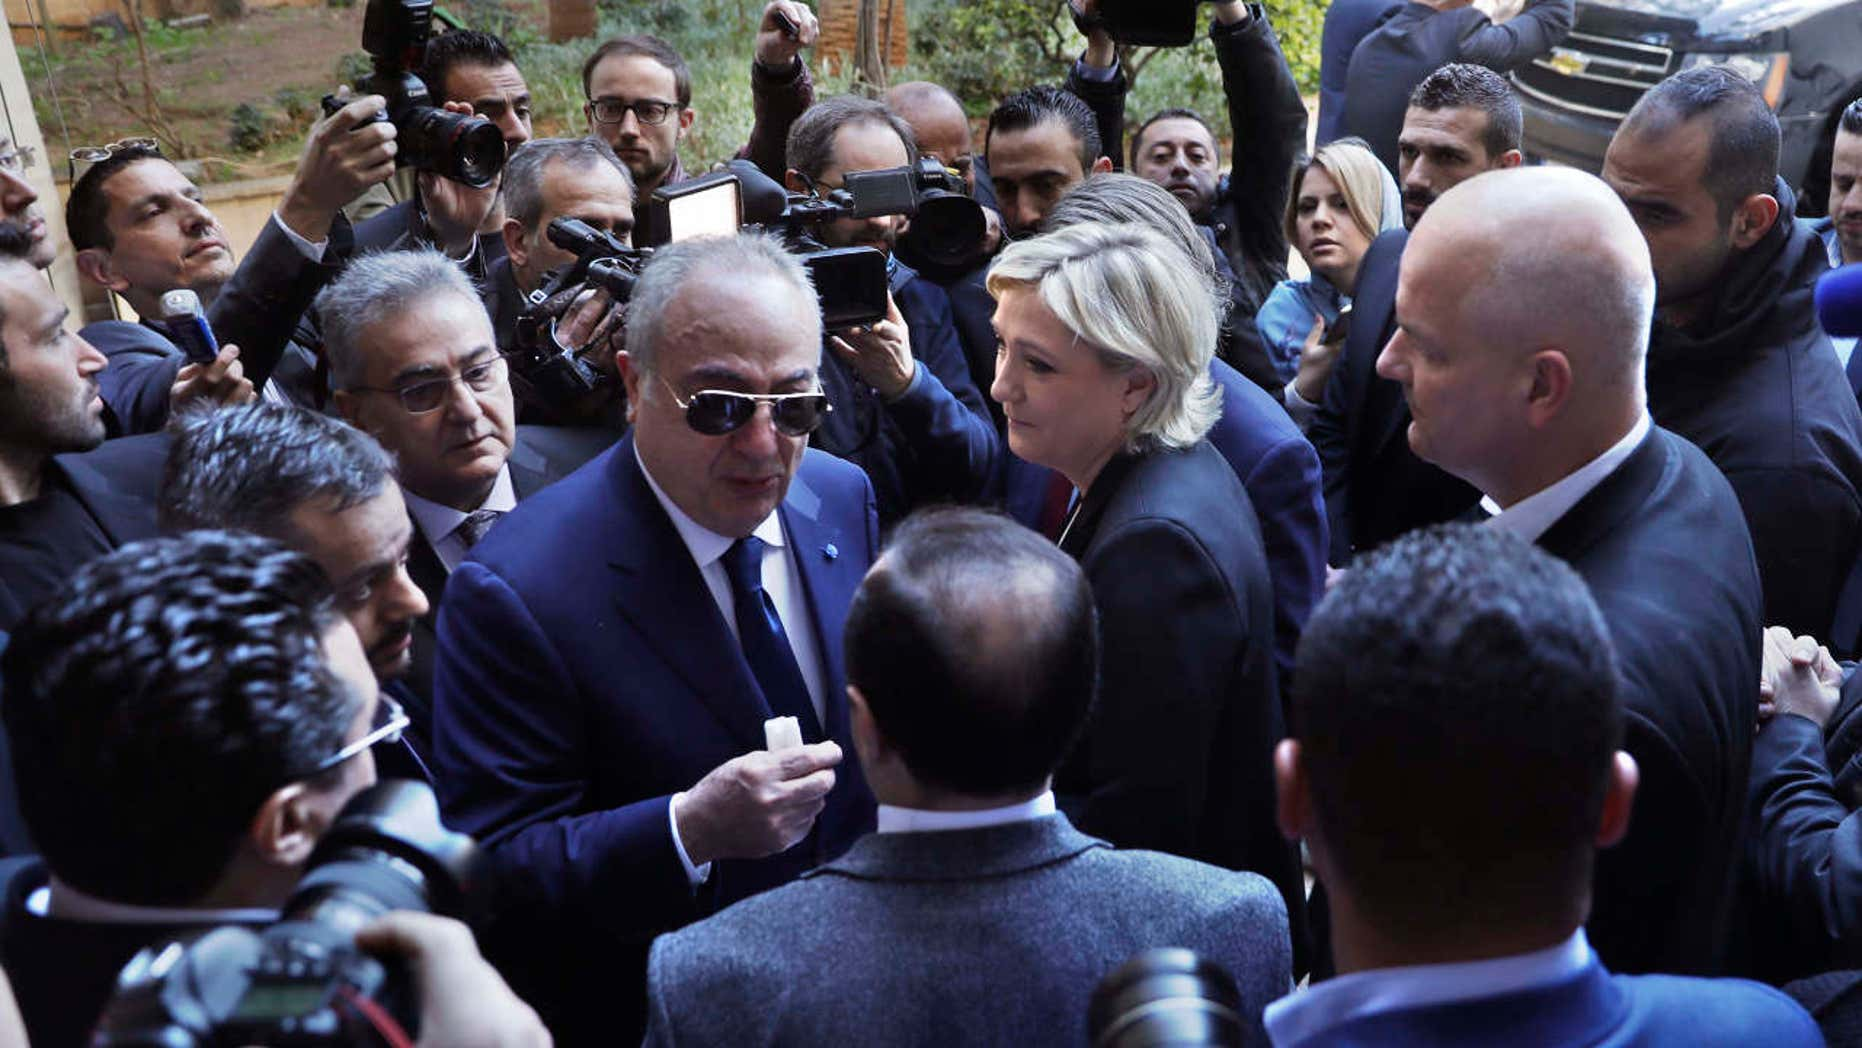 French far-right presidential candidate Marine Le Pen, center, leaves Dar al-Fatwa building.